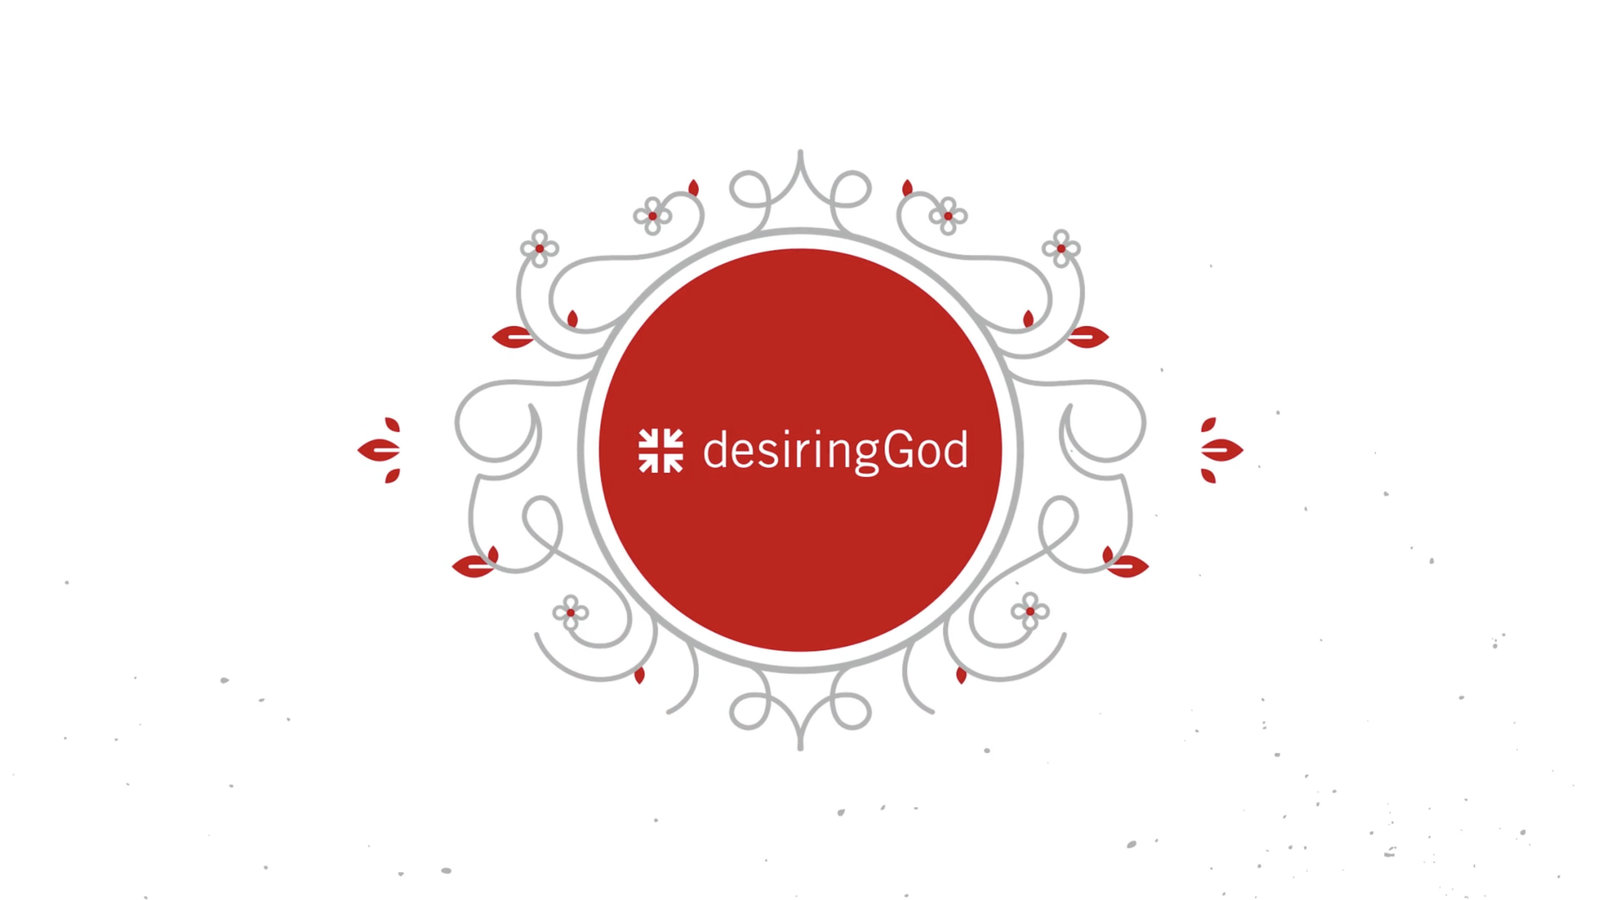 What's the Origin of Desiring God's Slogan?